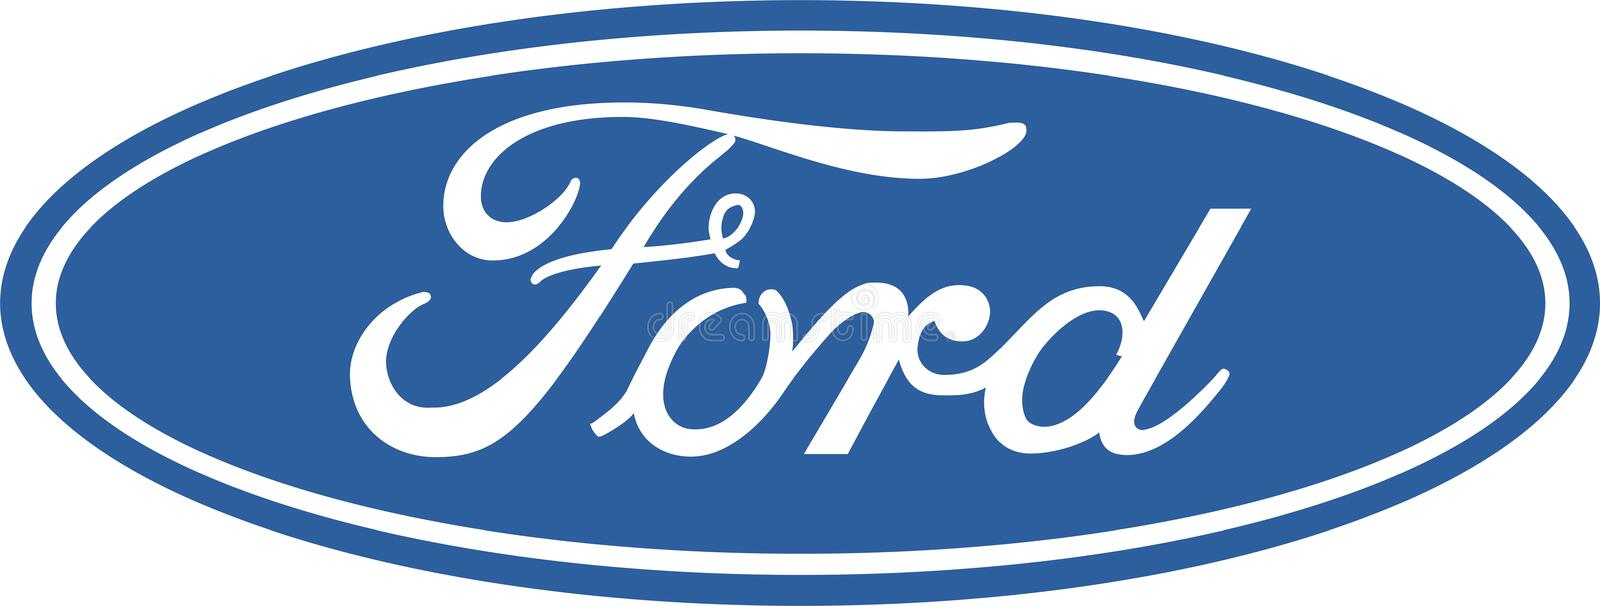 Ford company logo icon. Ford Motor Company is a multinational automaker that has its main headquarter in Dearborn, Michigan, a suburb of Detroit. It was founded royalty free illustration